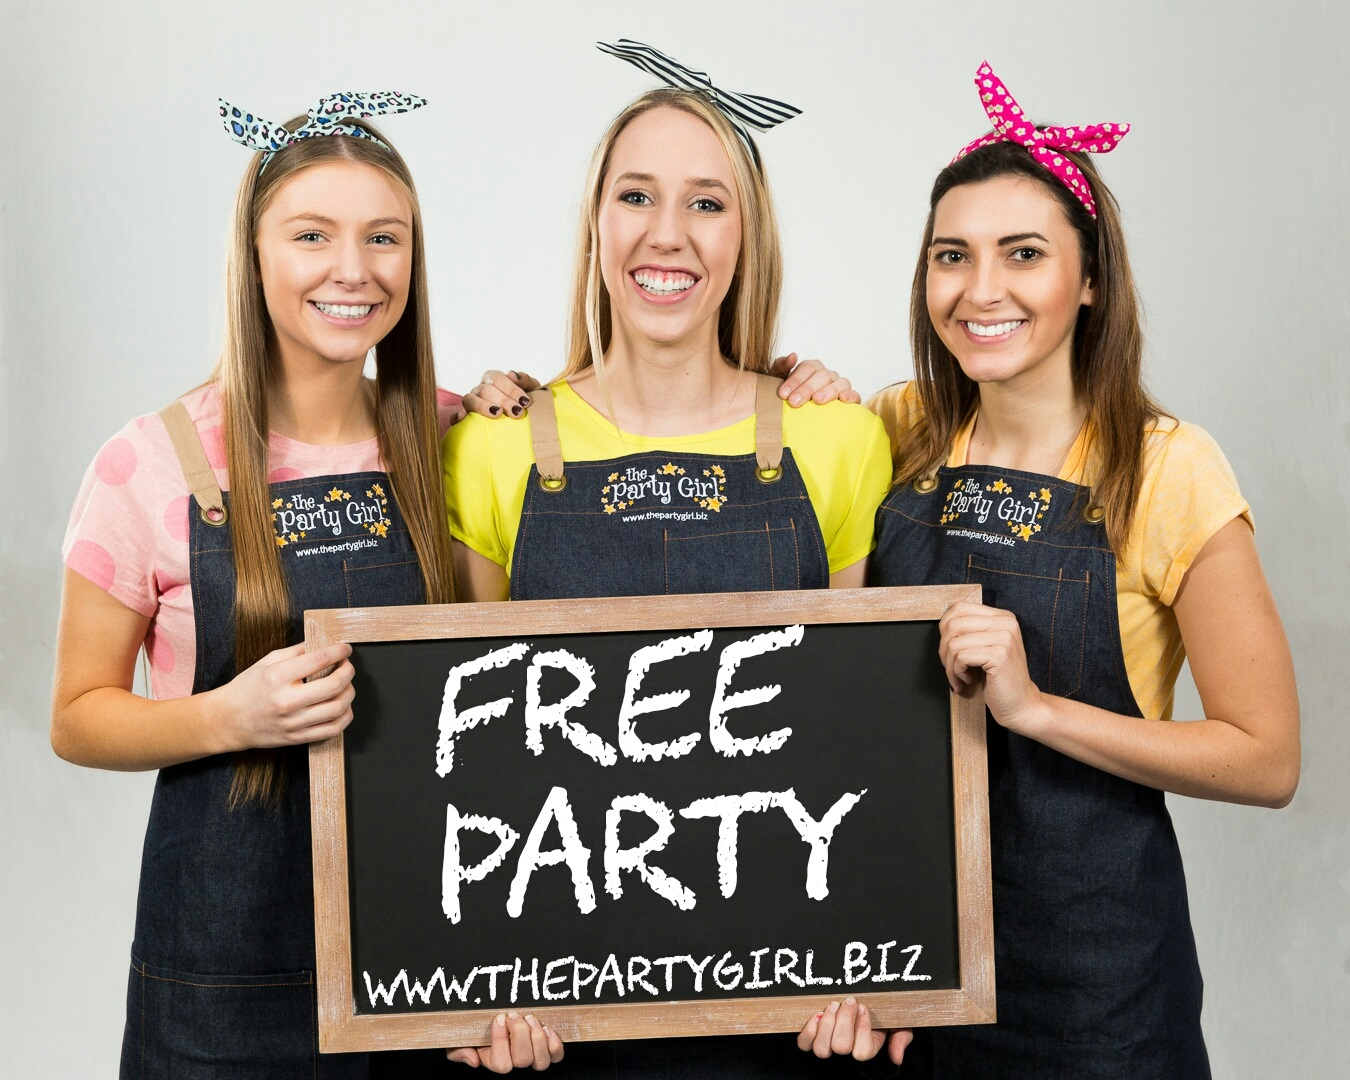 CANBERRA ONLY - WIN A FREE PARTY GIRL BOOKING